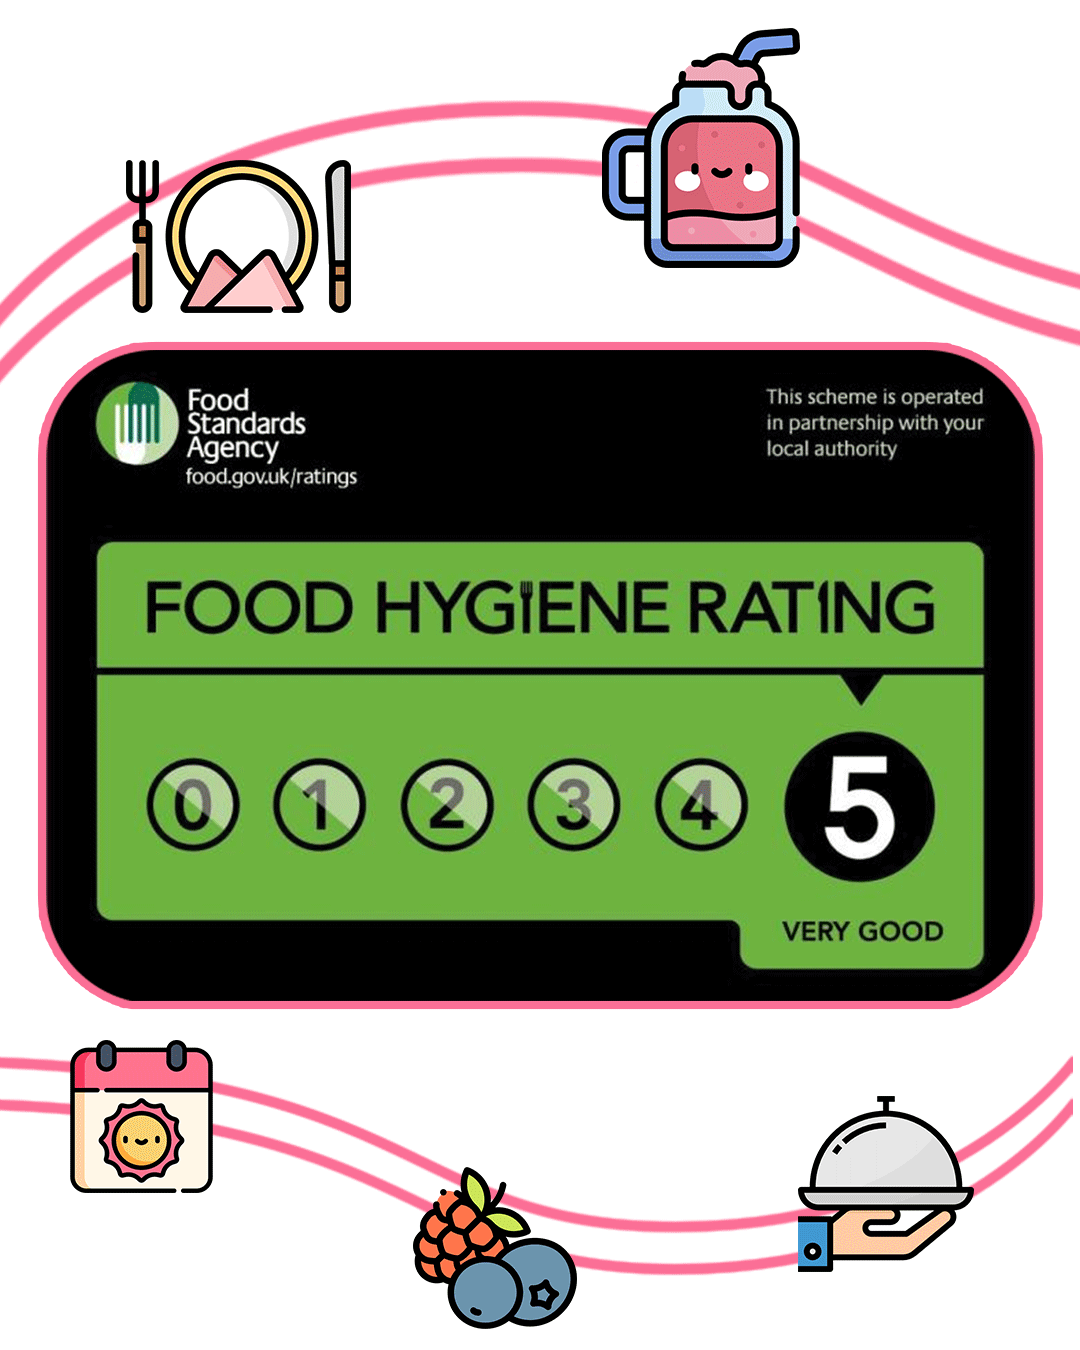 Food-Hygiene-Rating-5-PSD-mobile.png